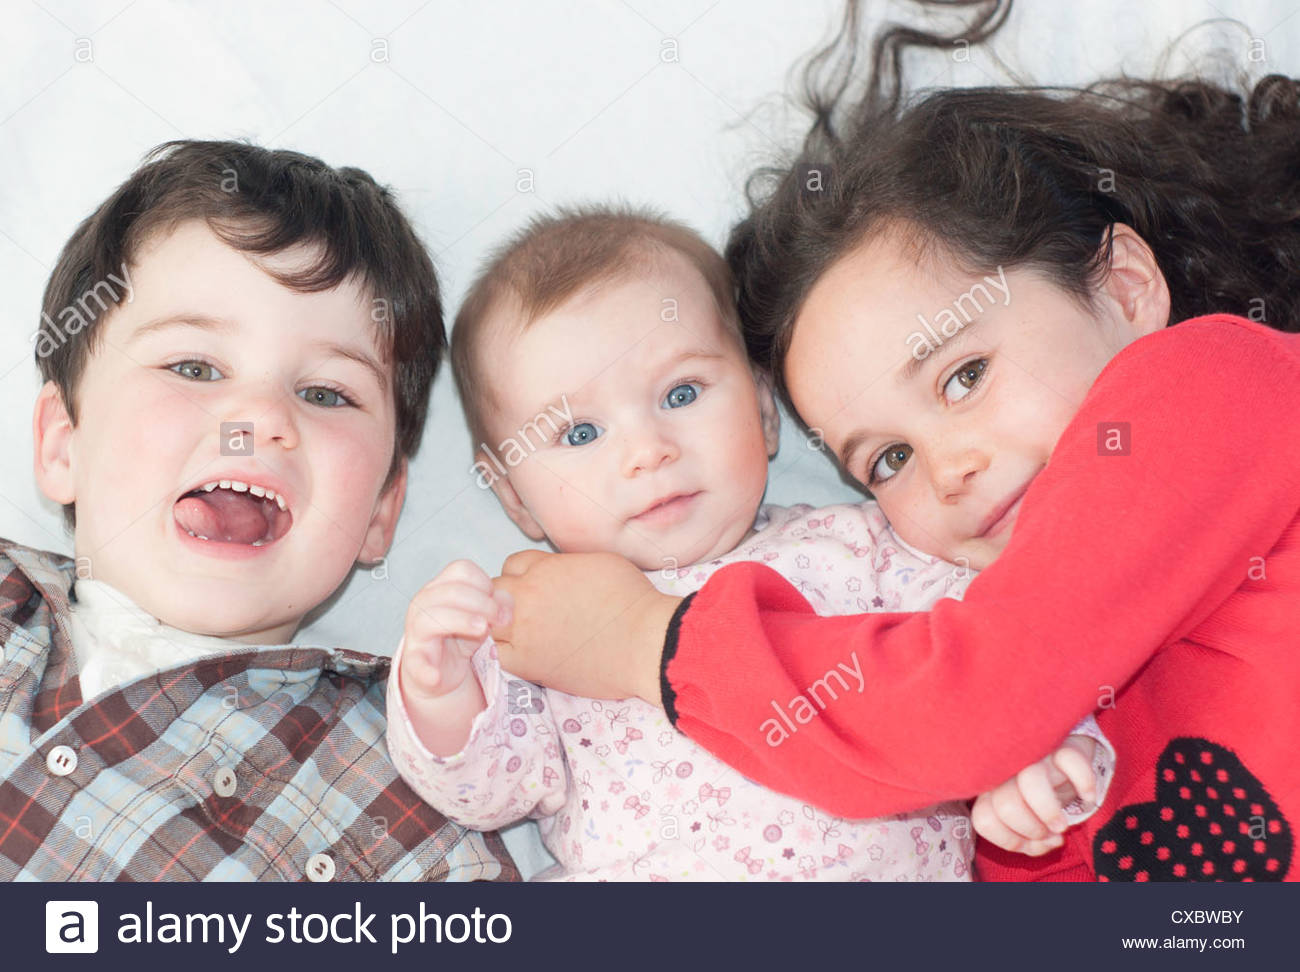 A boy and two girls, three siblings - Stock Image